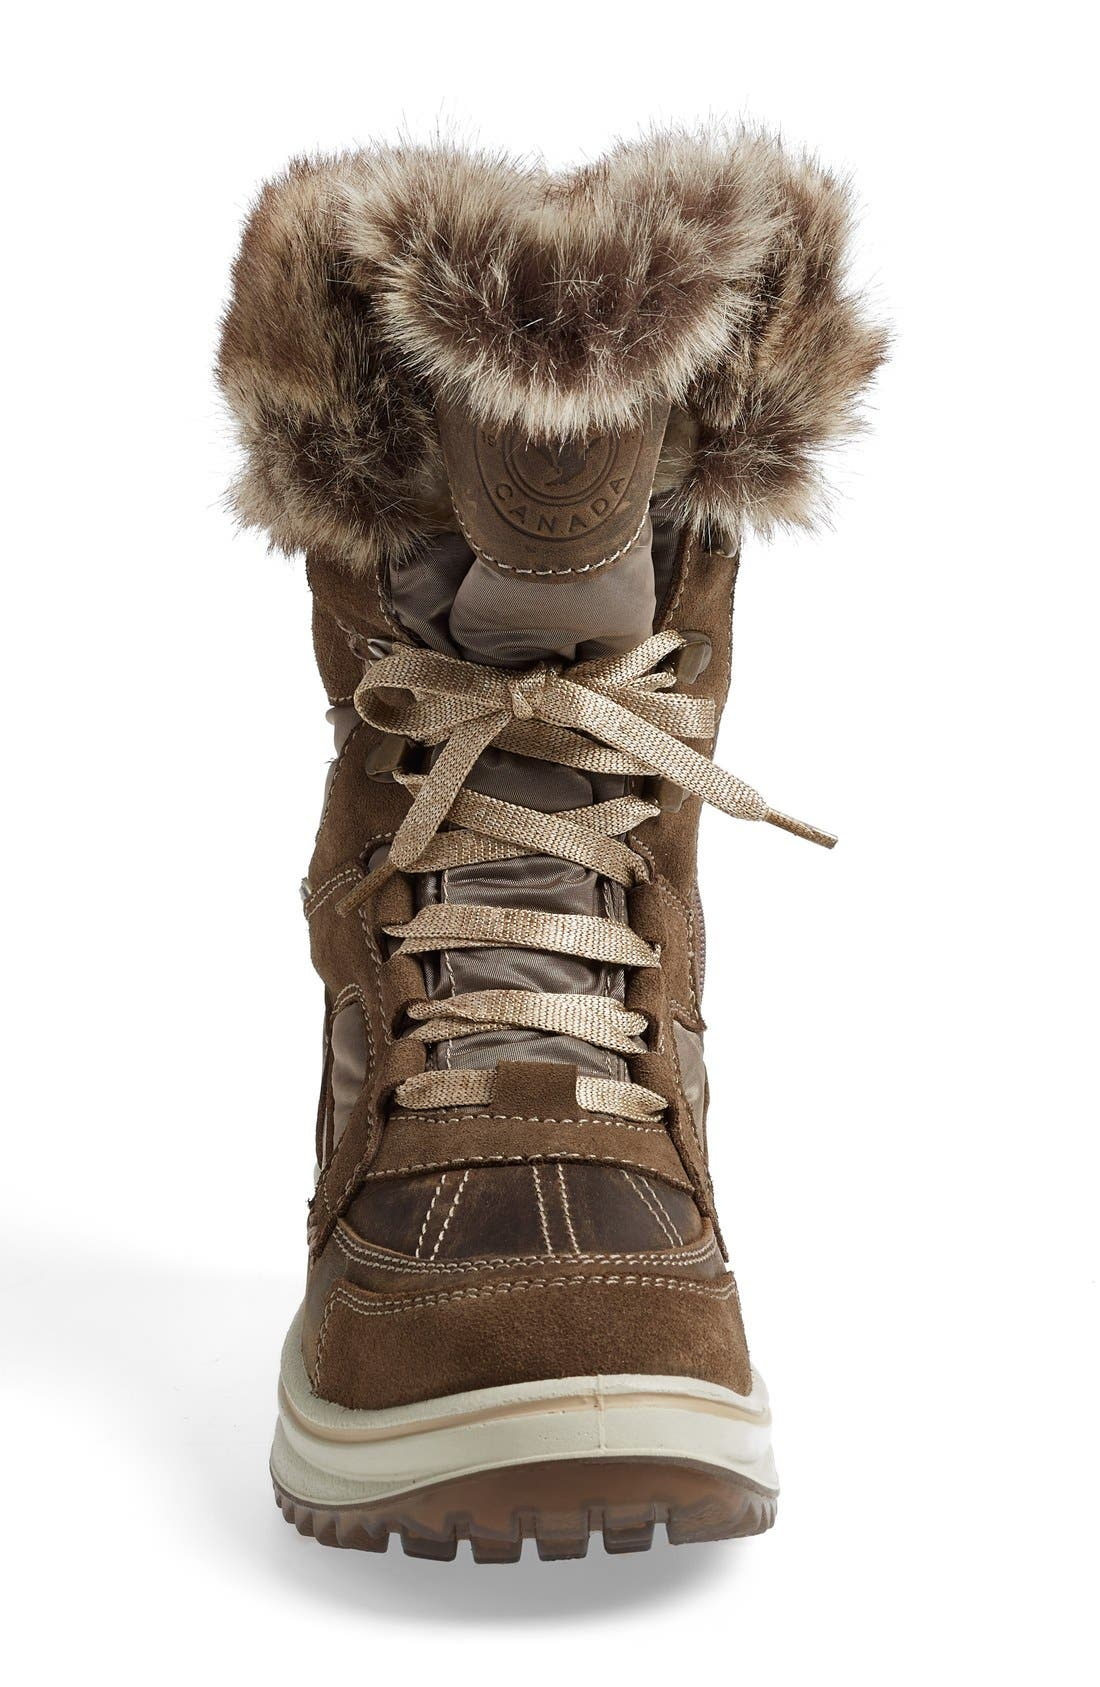 'Marta' Water Resistant Insulated Winter Boot,                             Alternate thumbnail 3, color,                             236